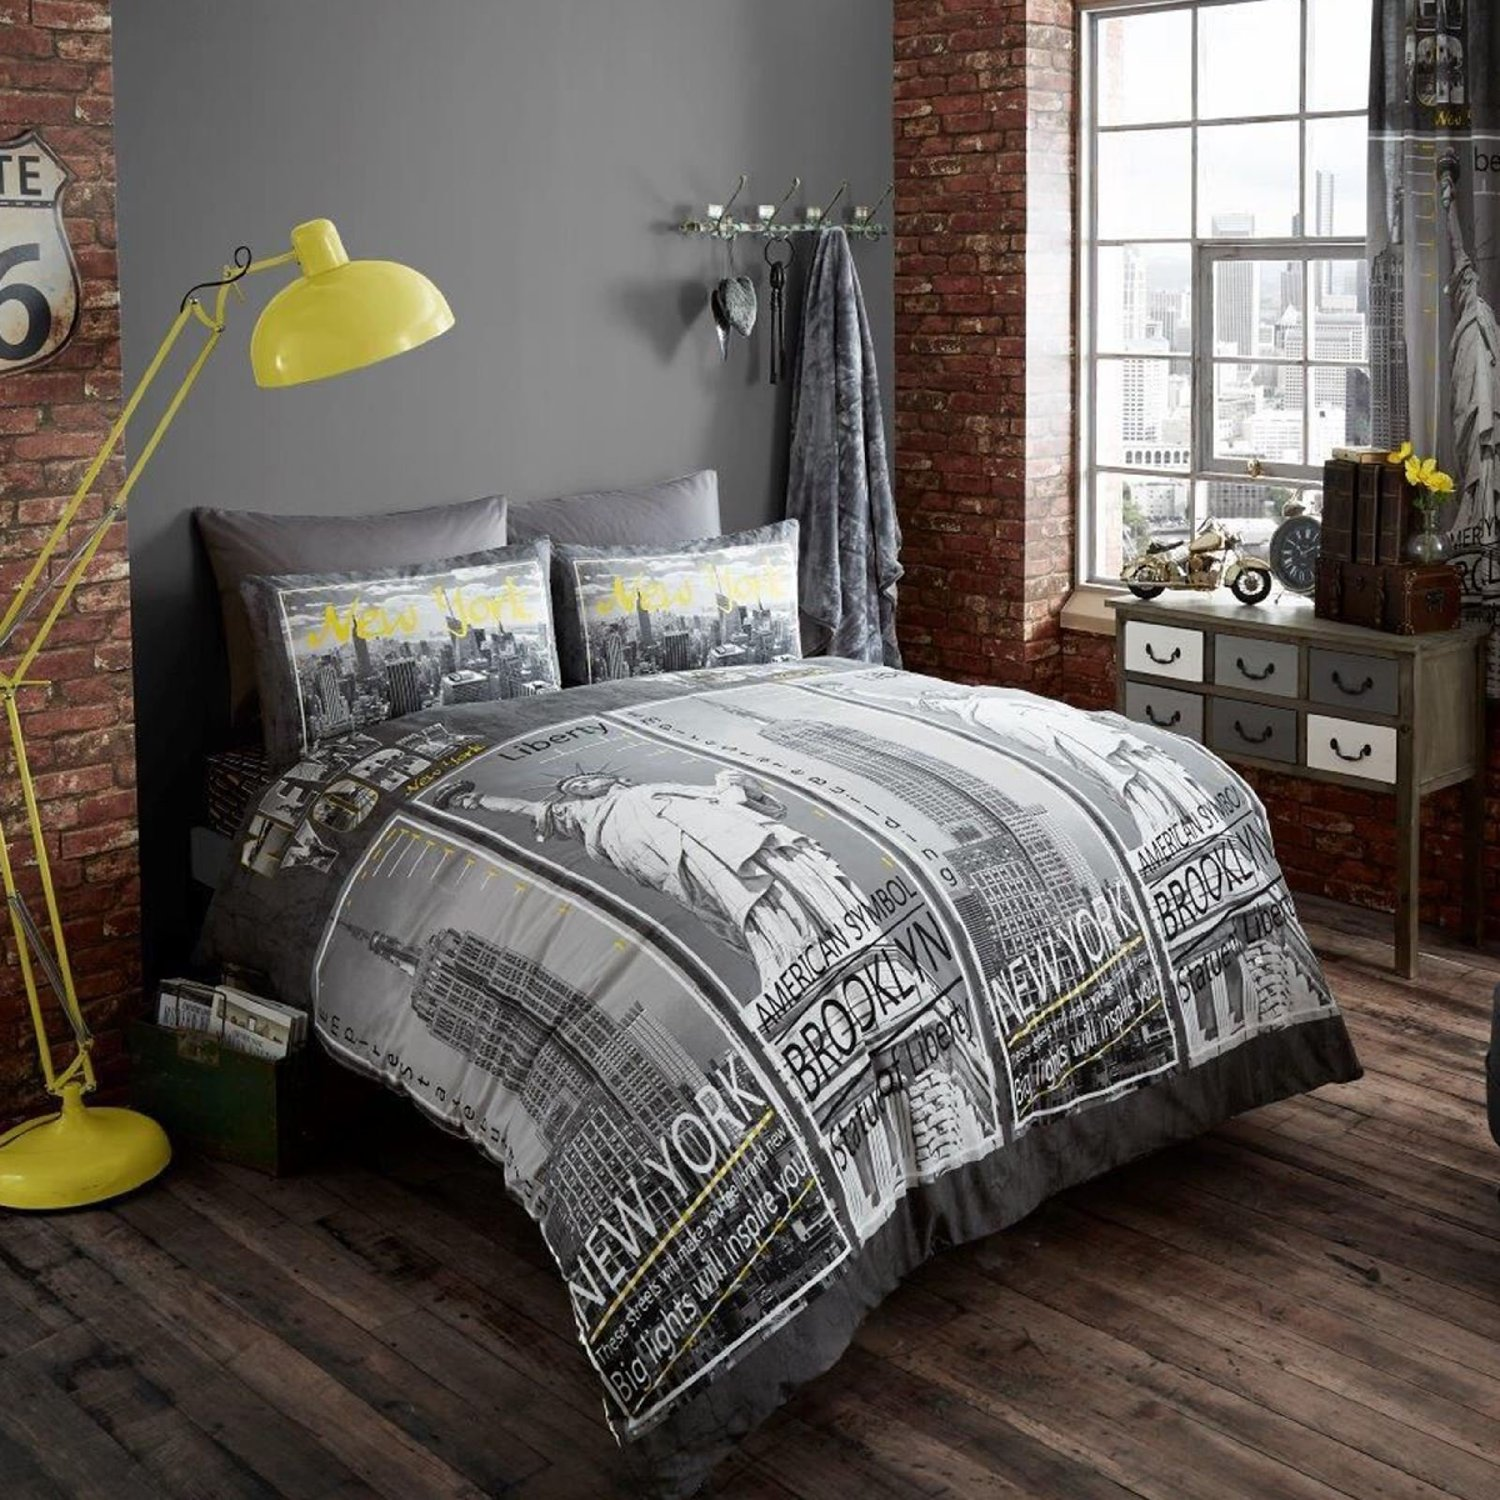 New York City Skyline Bedding & NYC Themed Bedroom Ideas